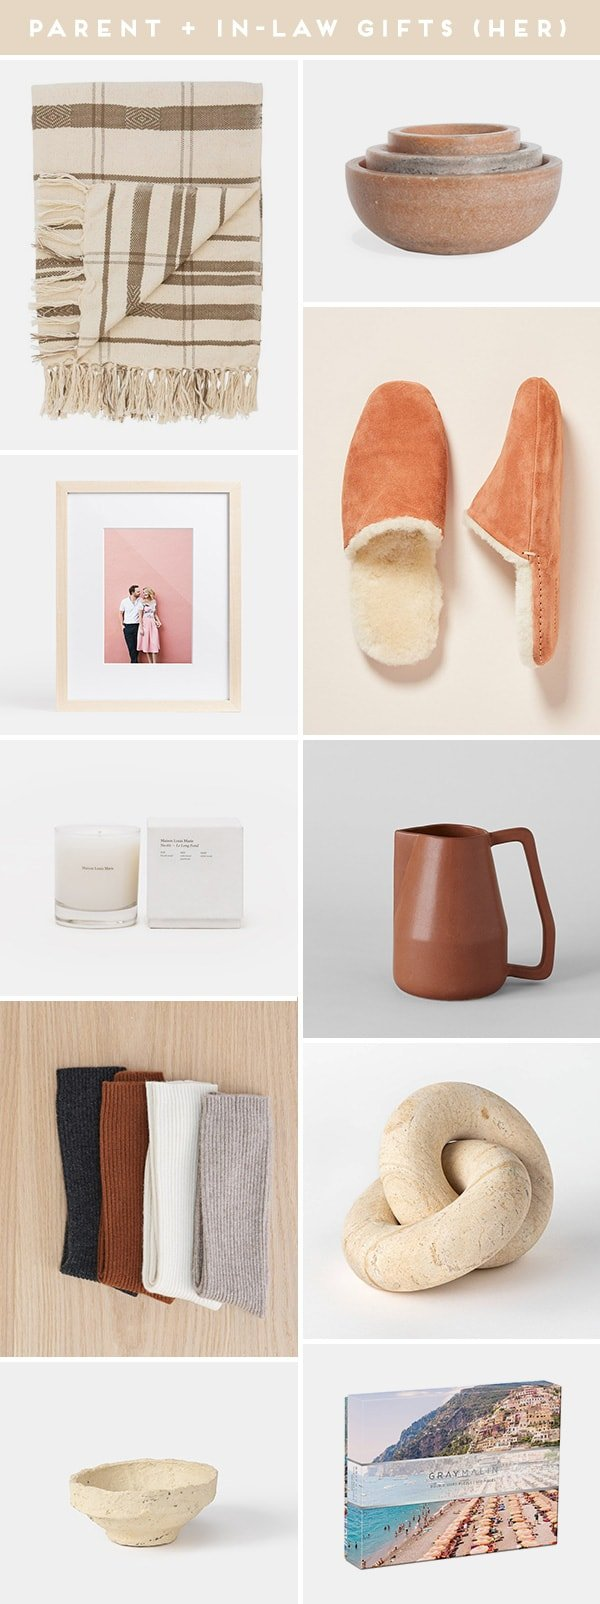 Images of gift ideas for parents and in-laws (hers edition)